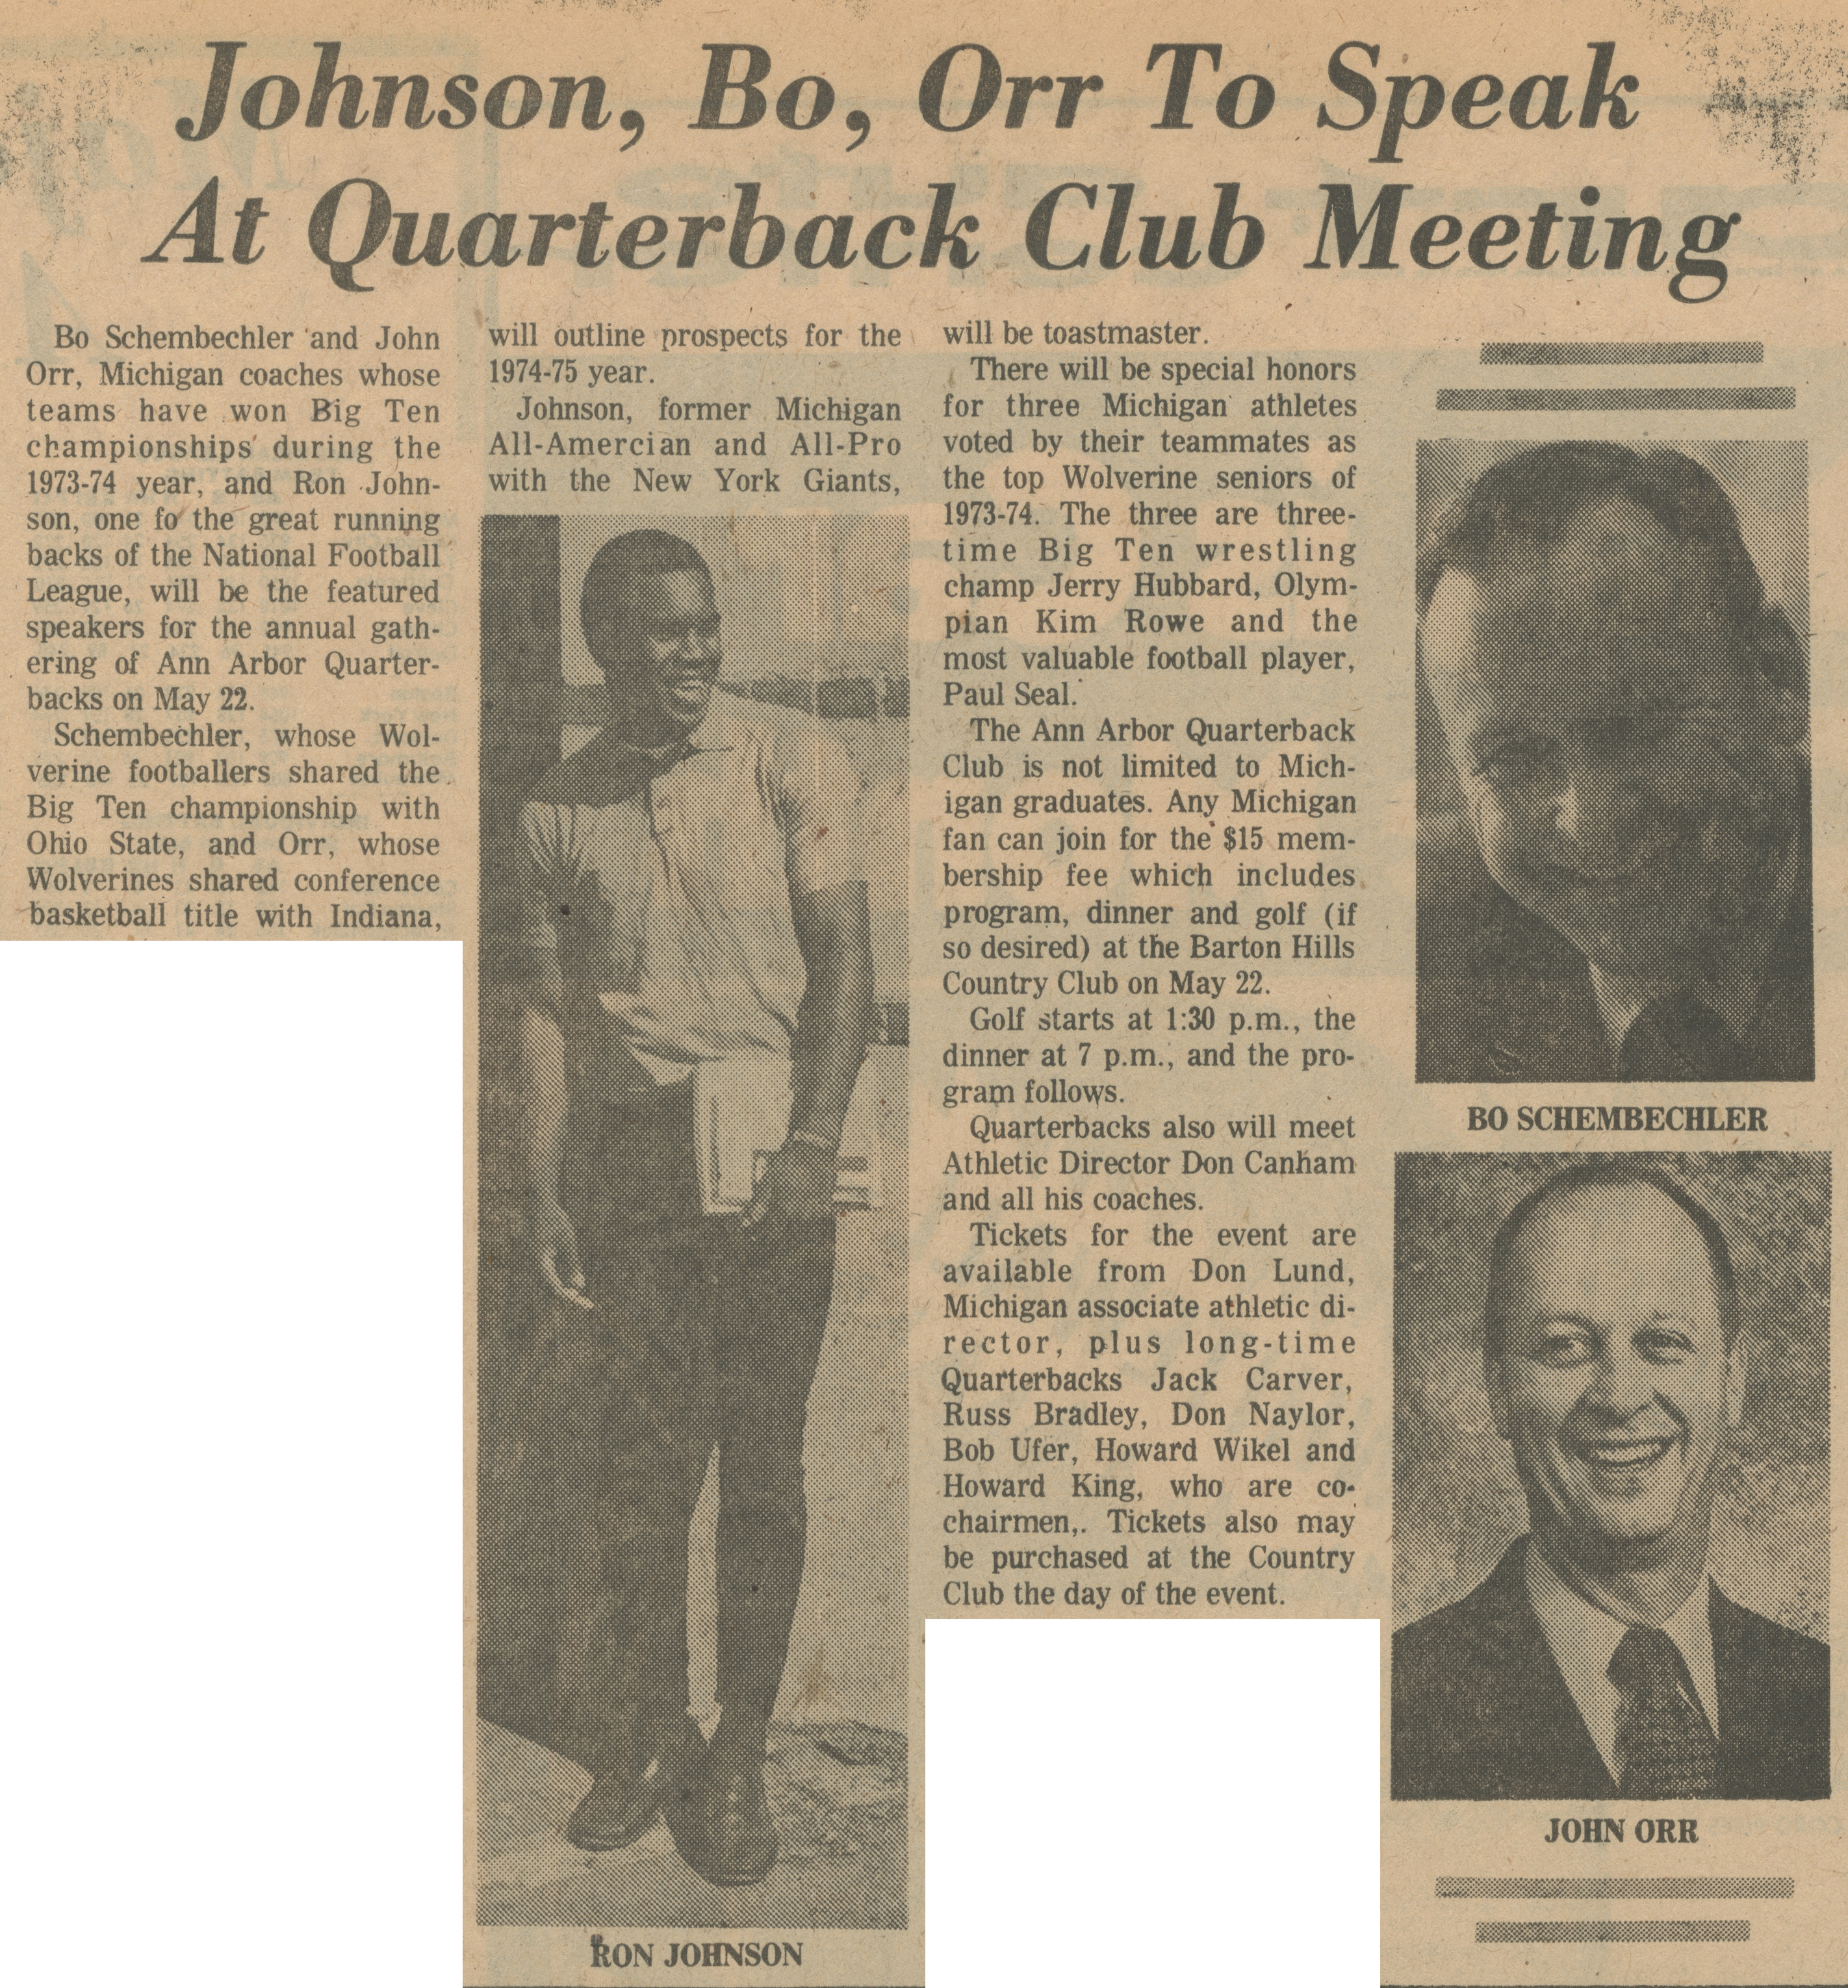 Johnson, Bo, Orr To Speak At Quarterback Club Meeting image